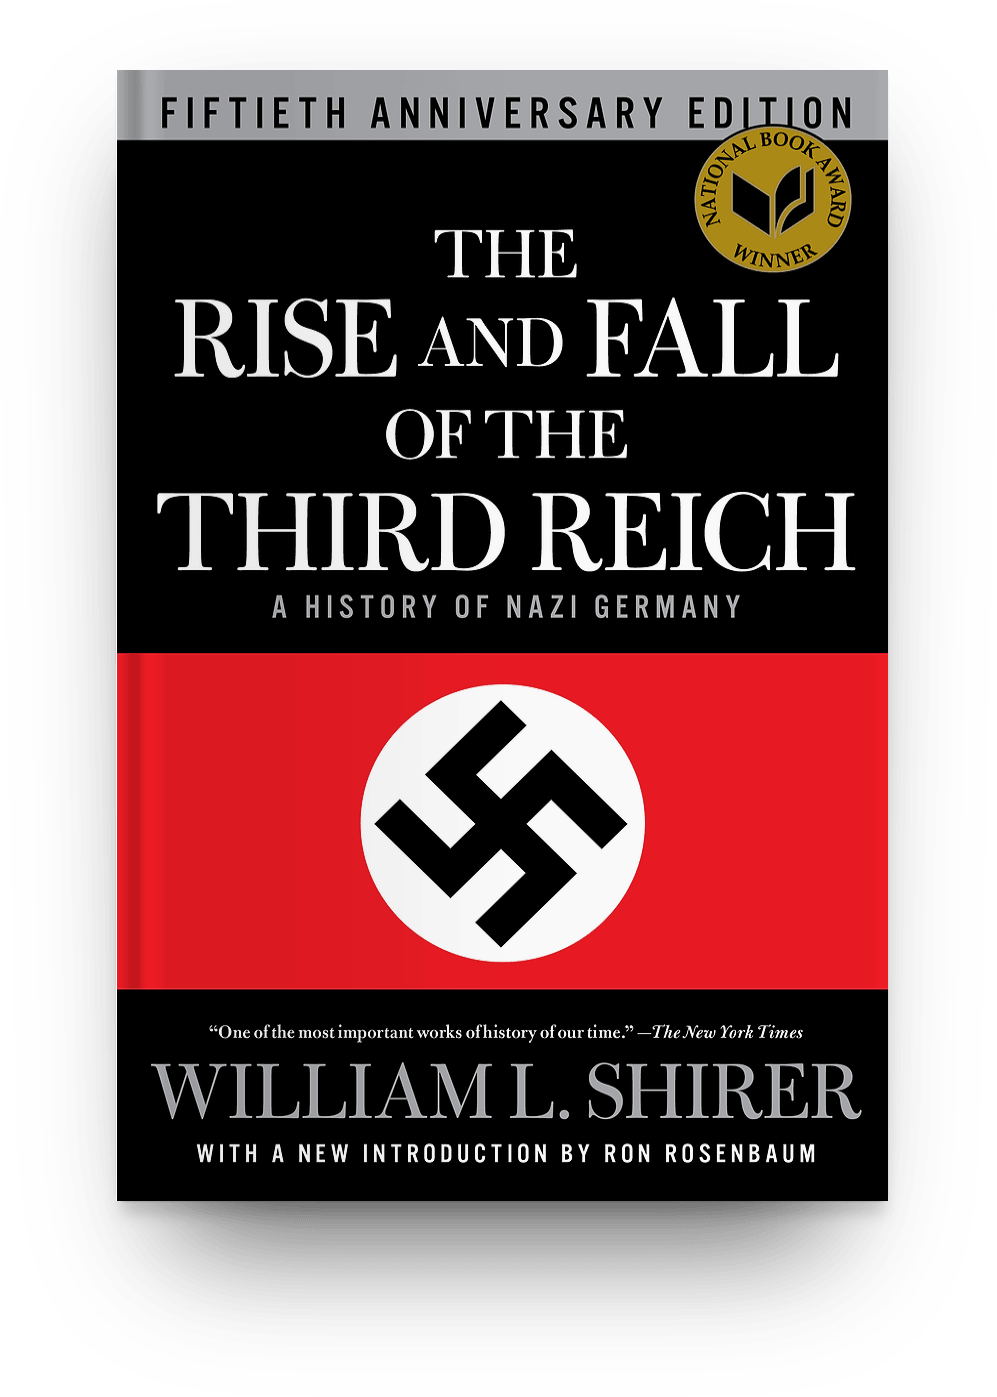 The Rise and Fall of the Third Reich by ​William L. Shirer (1960) book cover. World War 2 books